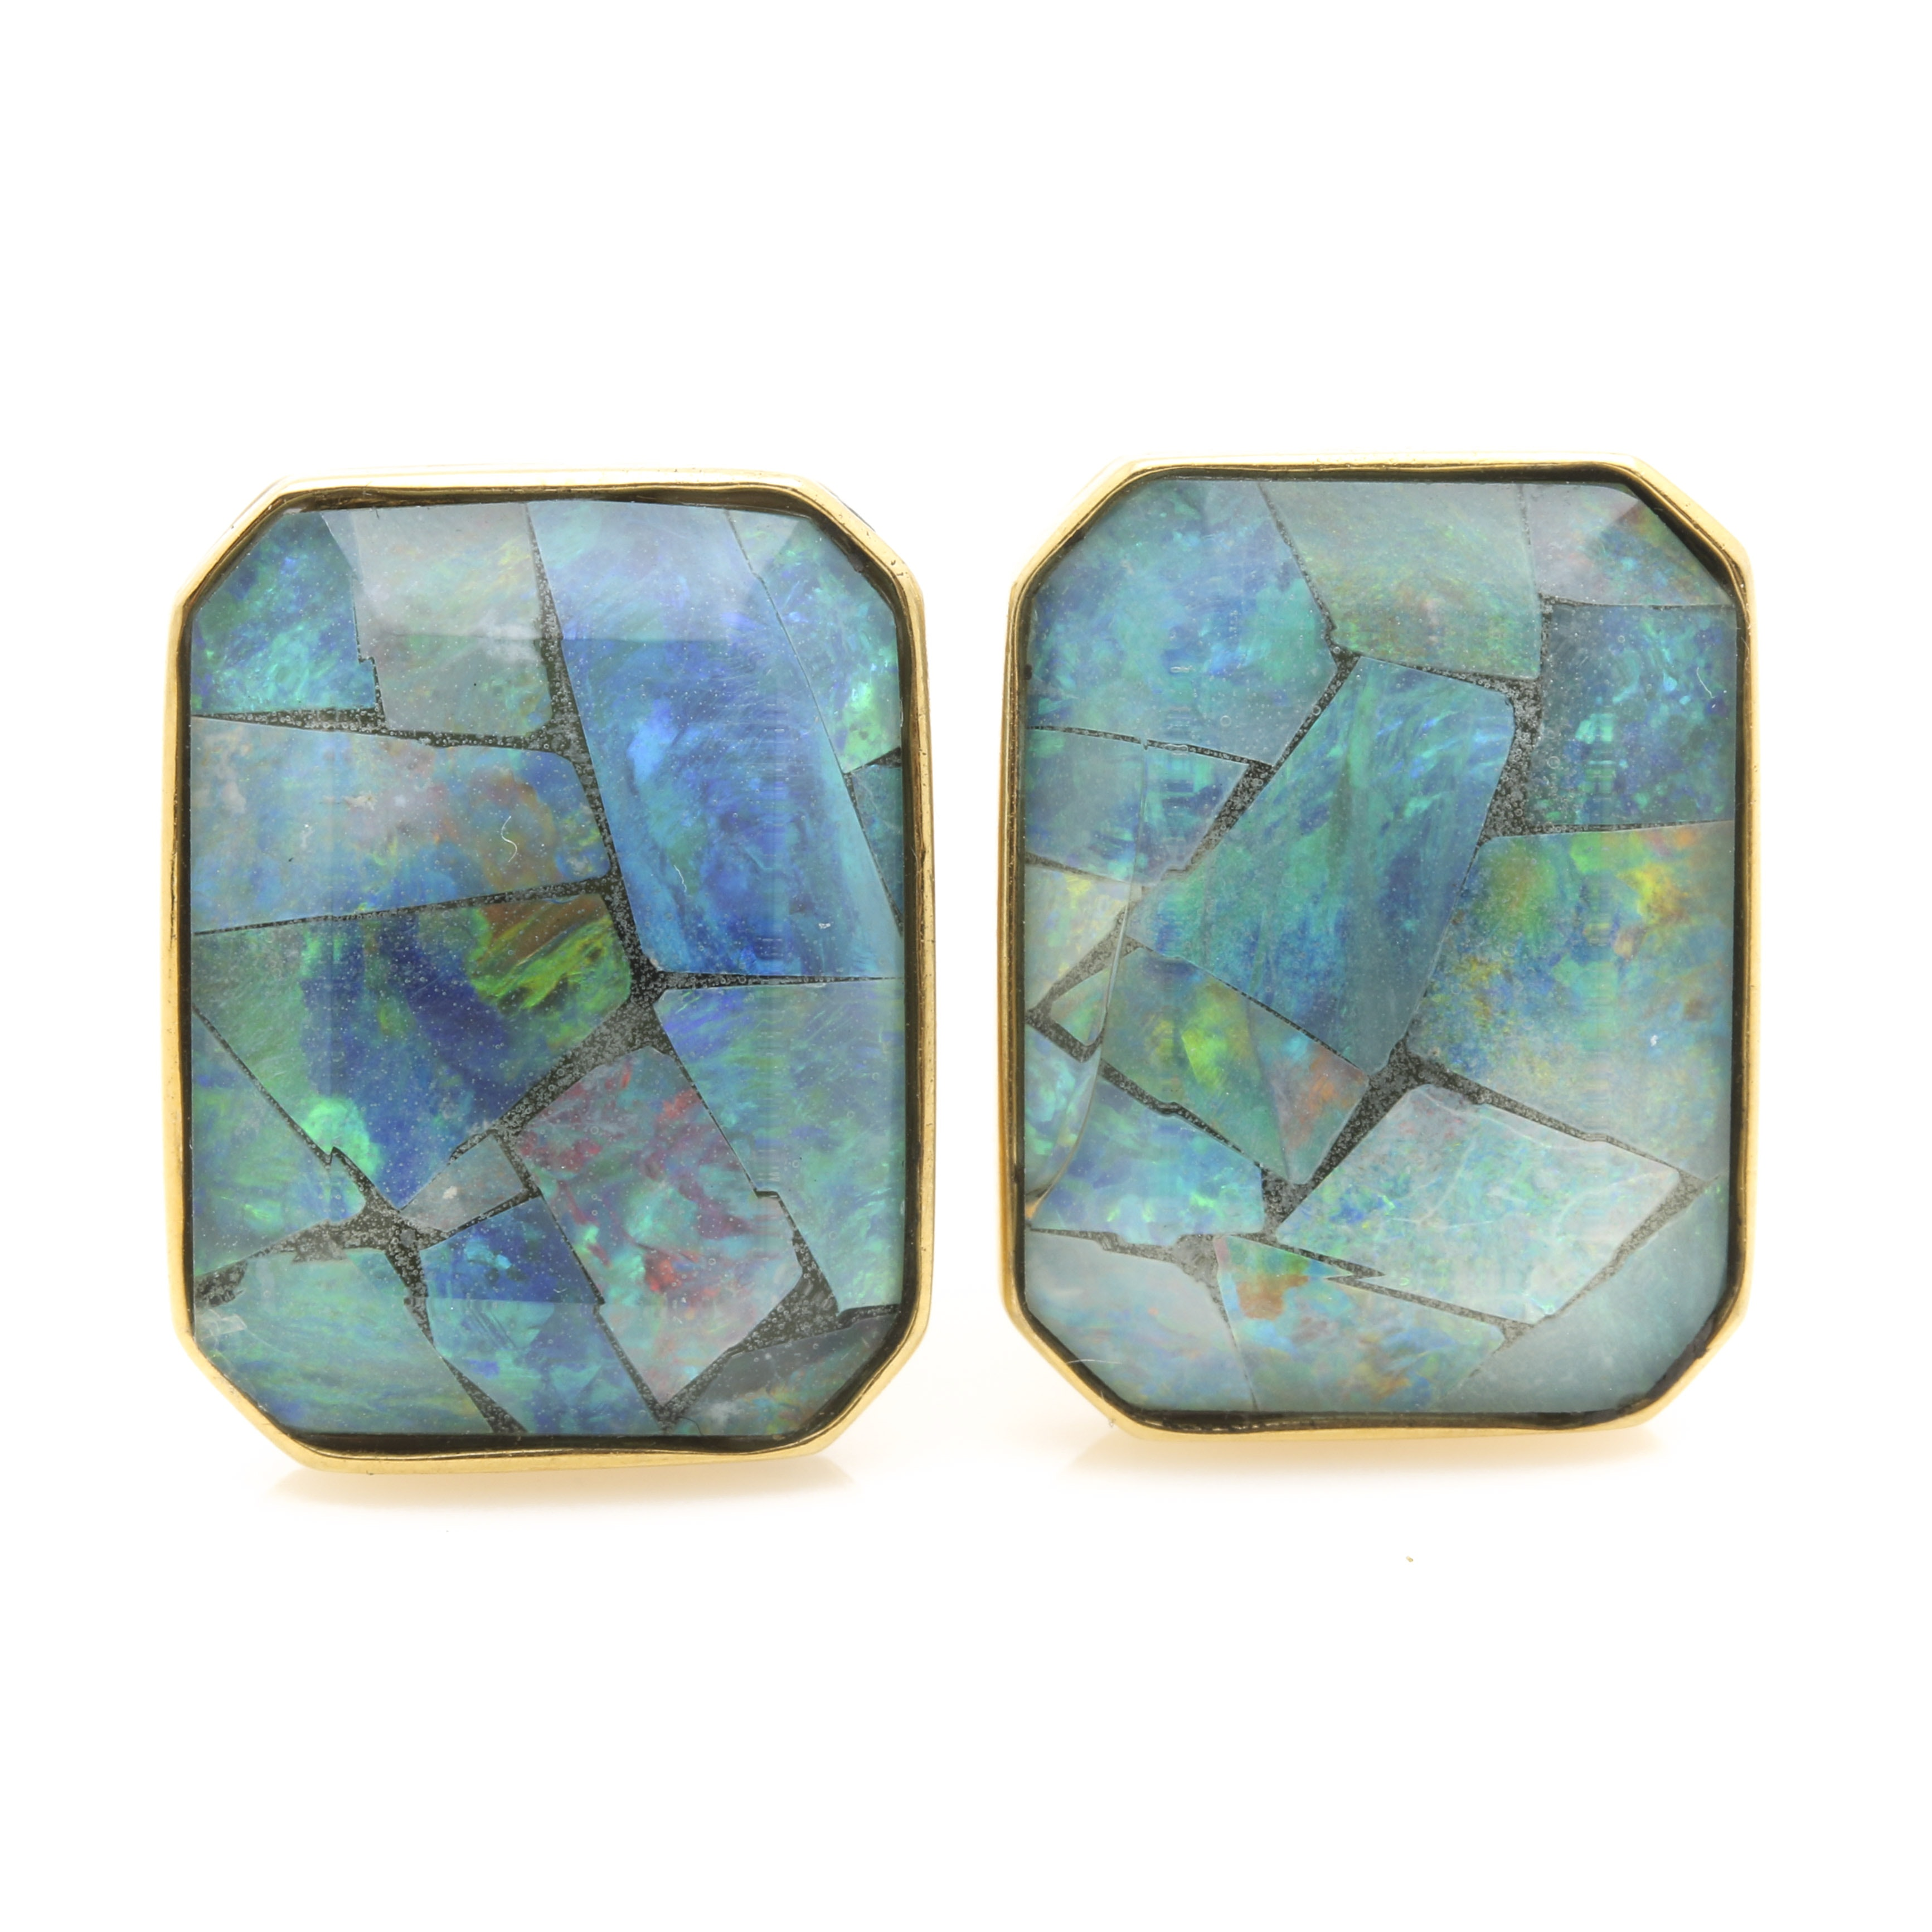 14K Yellow Gold Cufflinks with Opal Triplet Inlay Stones